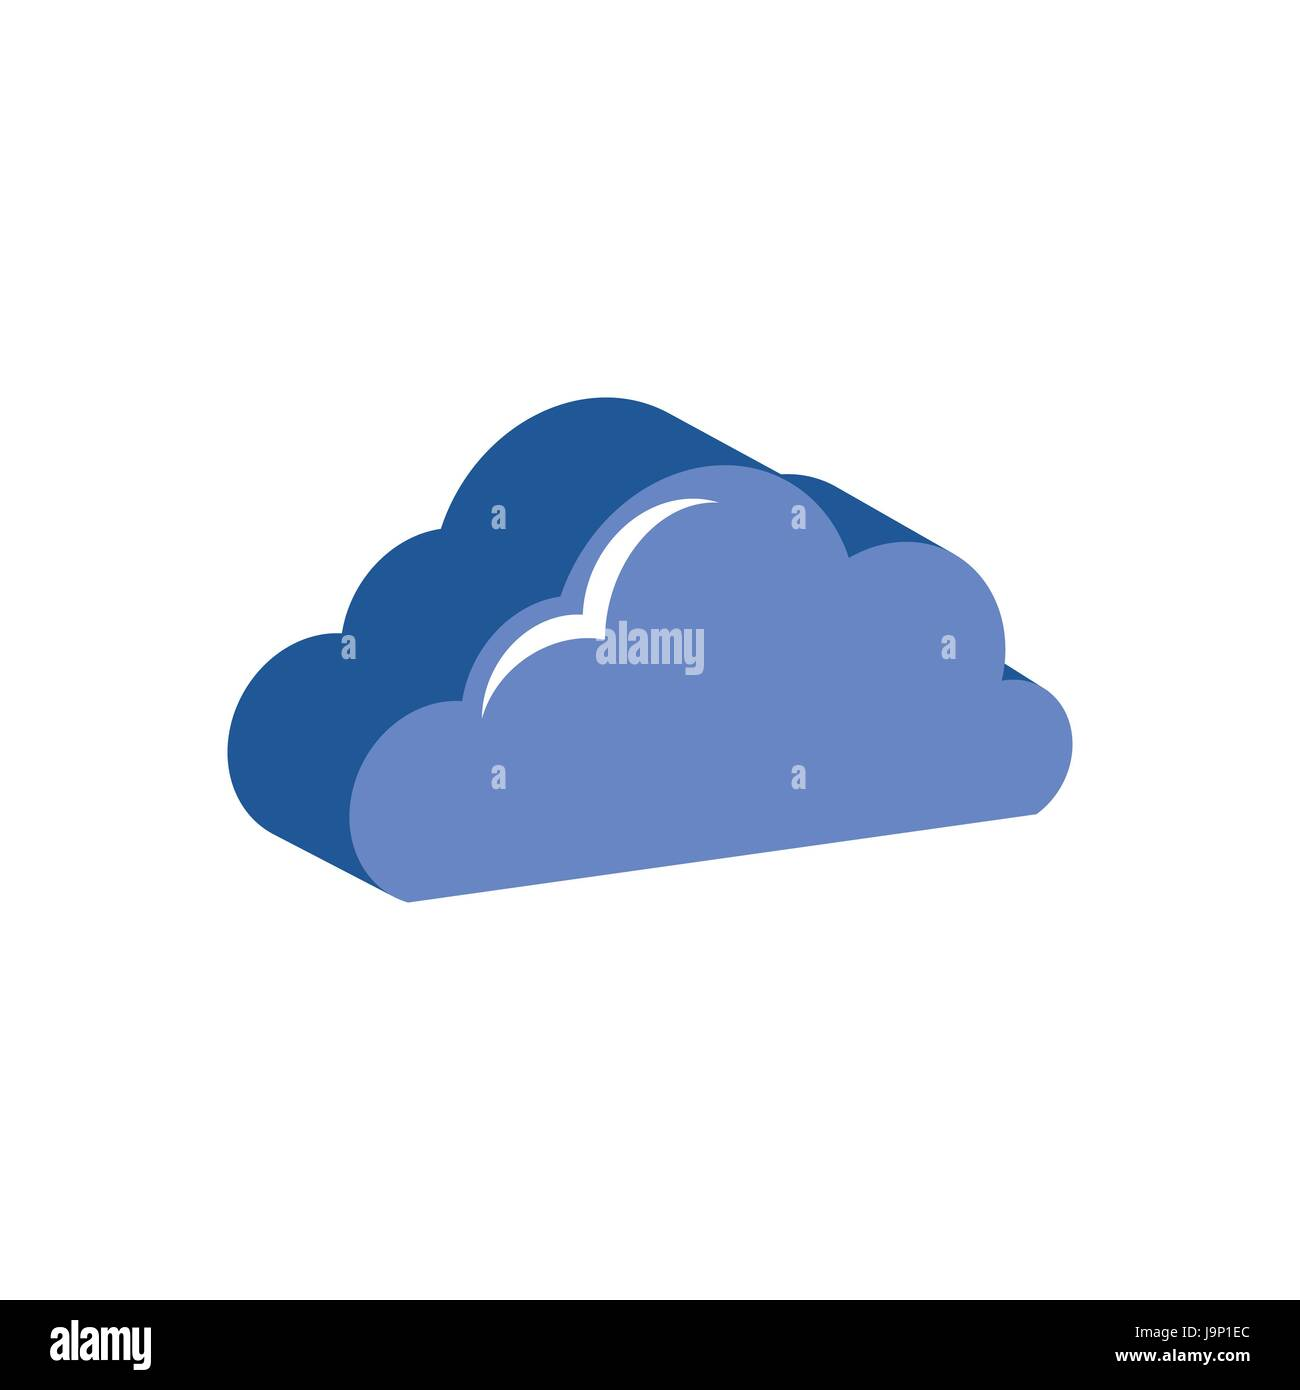 Cloud symbol flat isometric icon or logo 3d style pictogram for cloud symbol flat isometric icon or logo 3d style pictogram for web design ui mobile app infographic vector illustration on white background biocorpaavc Gallery